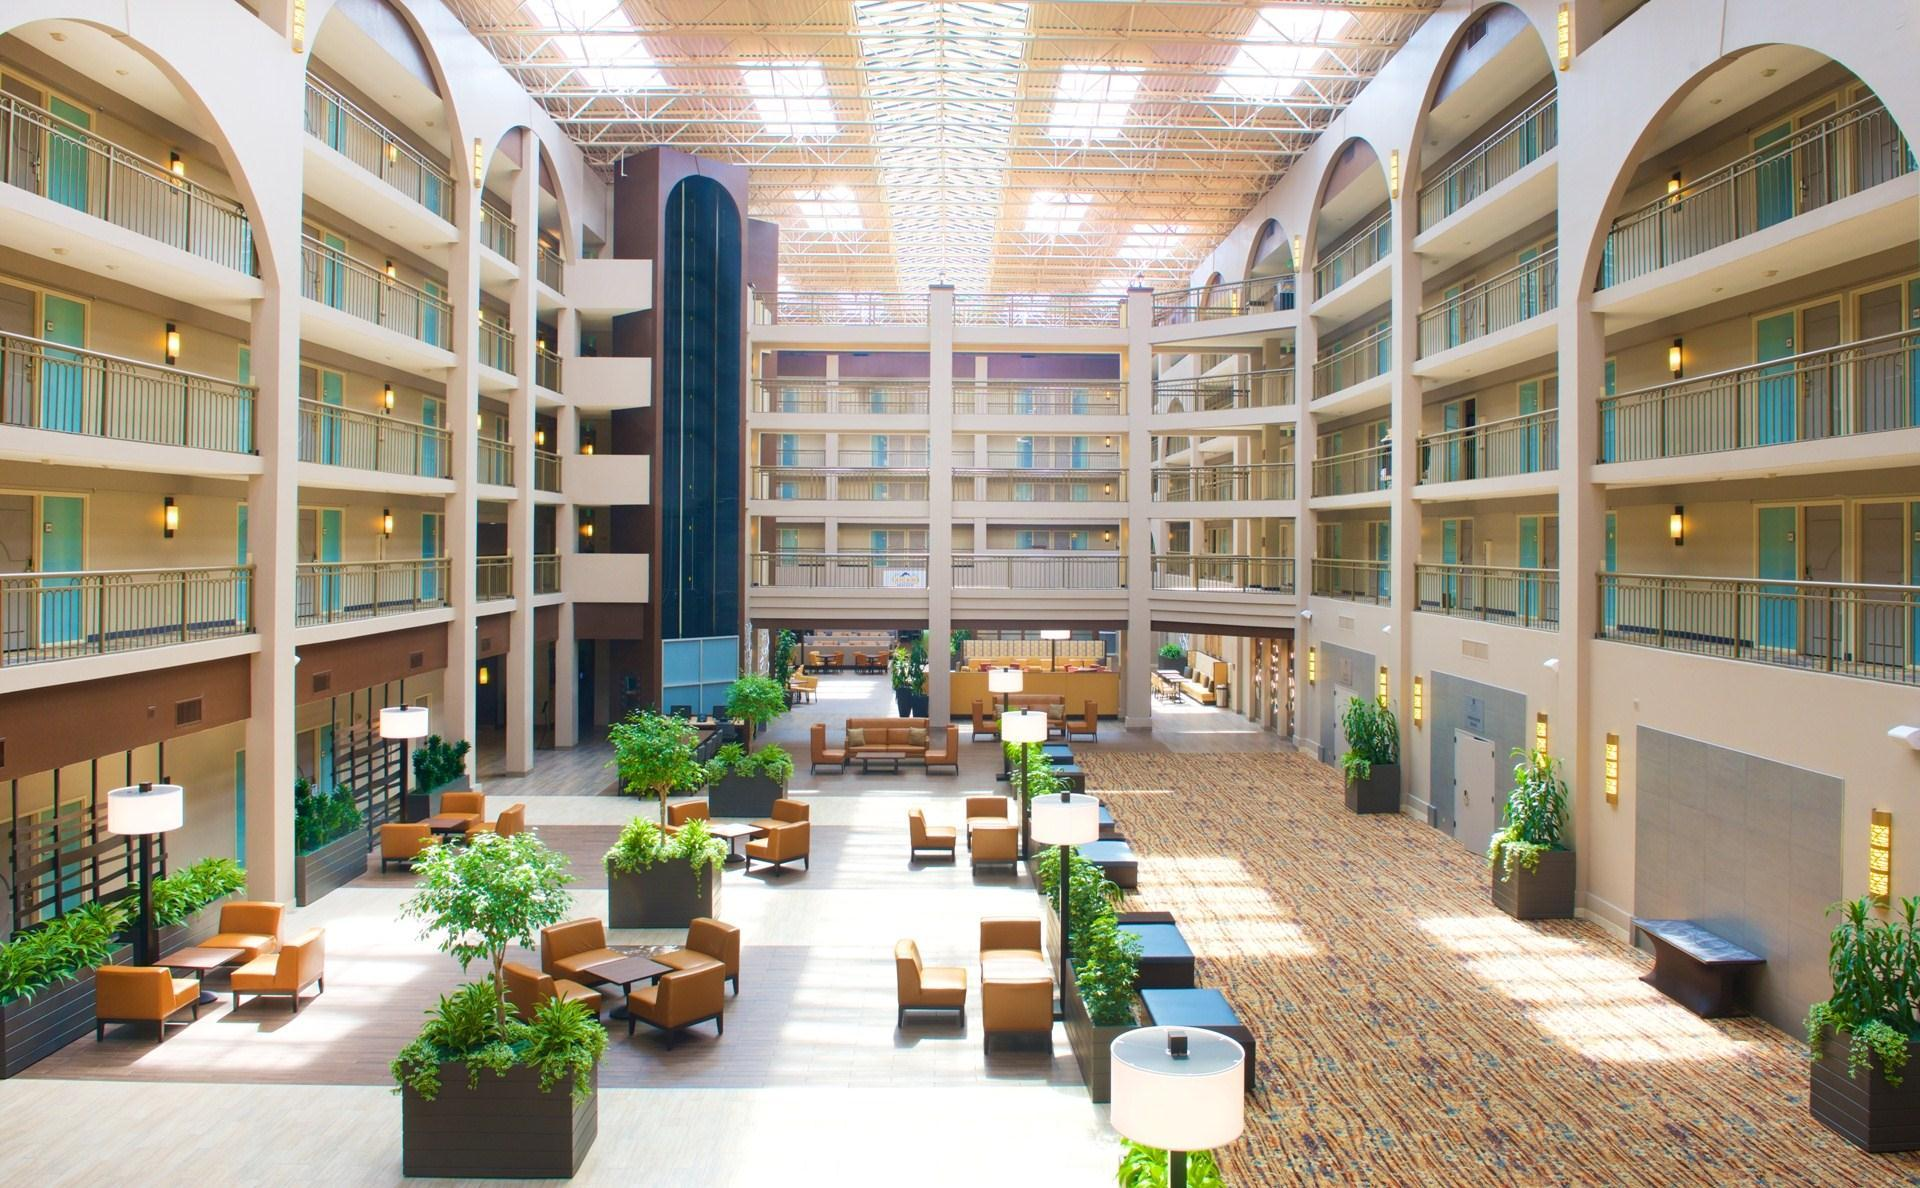 Meetings And Events At Embassy Suites By Hilton Seattle Bellevue